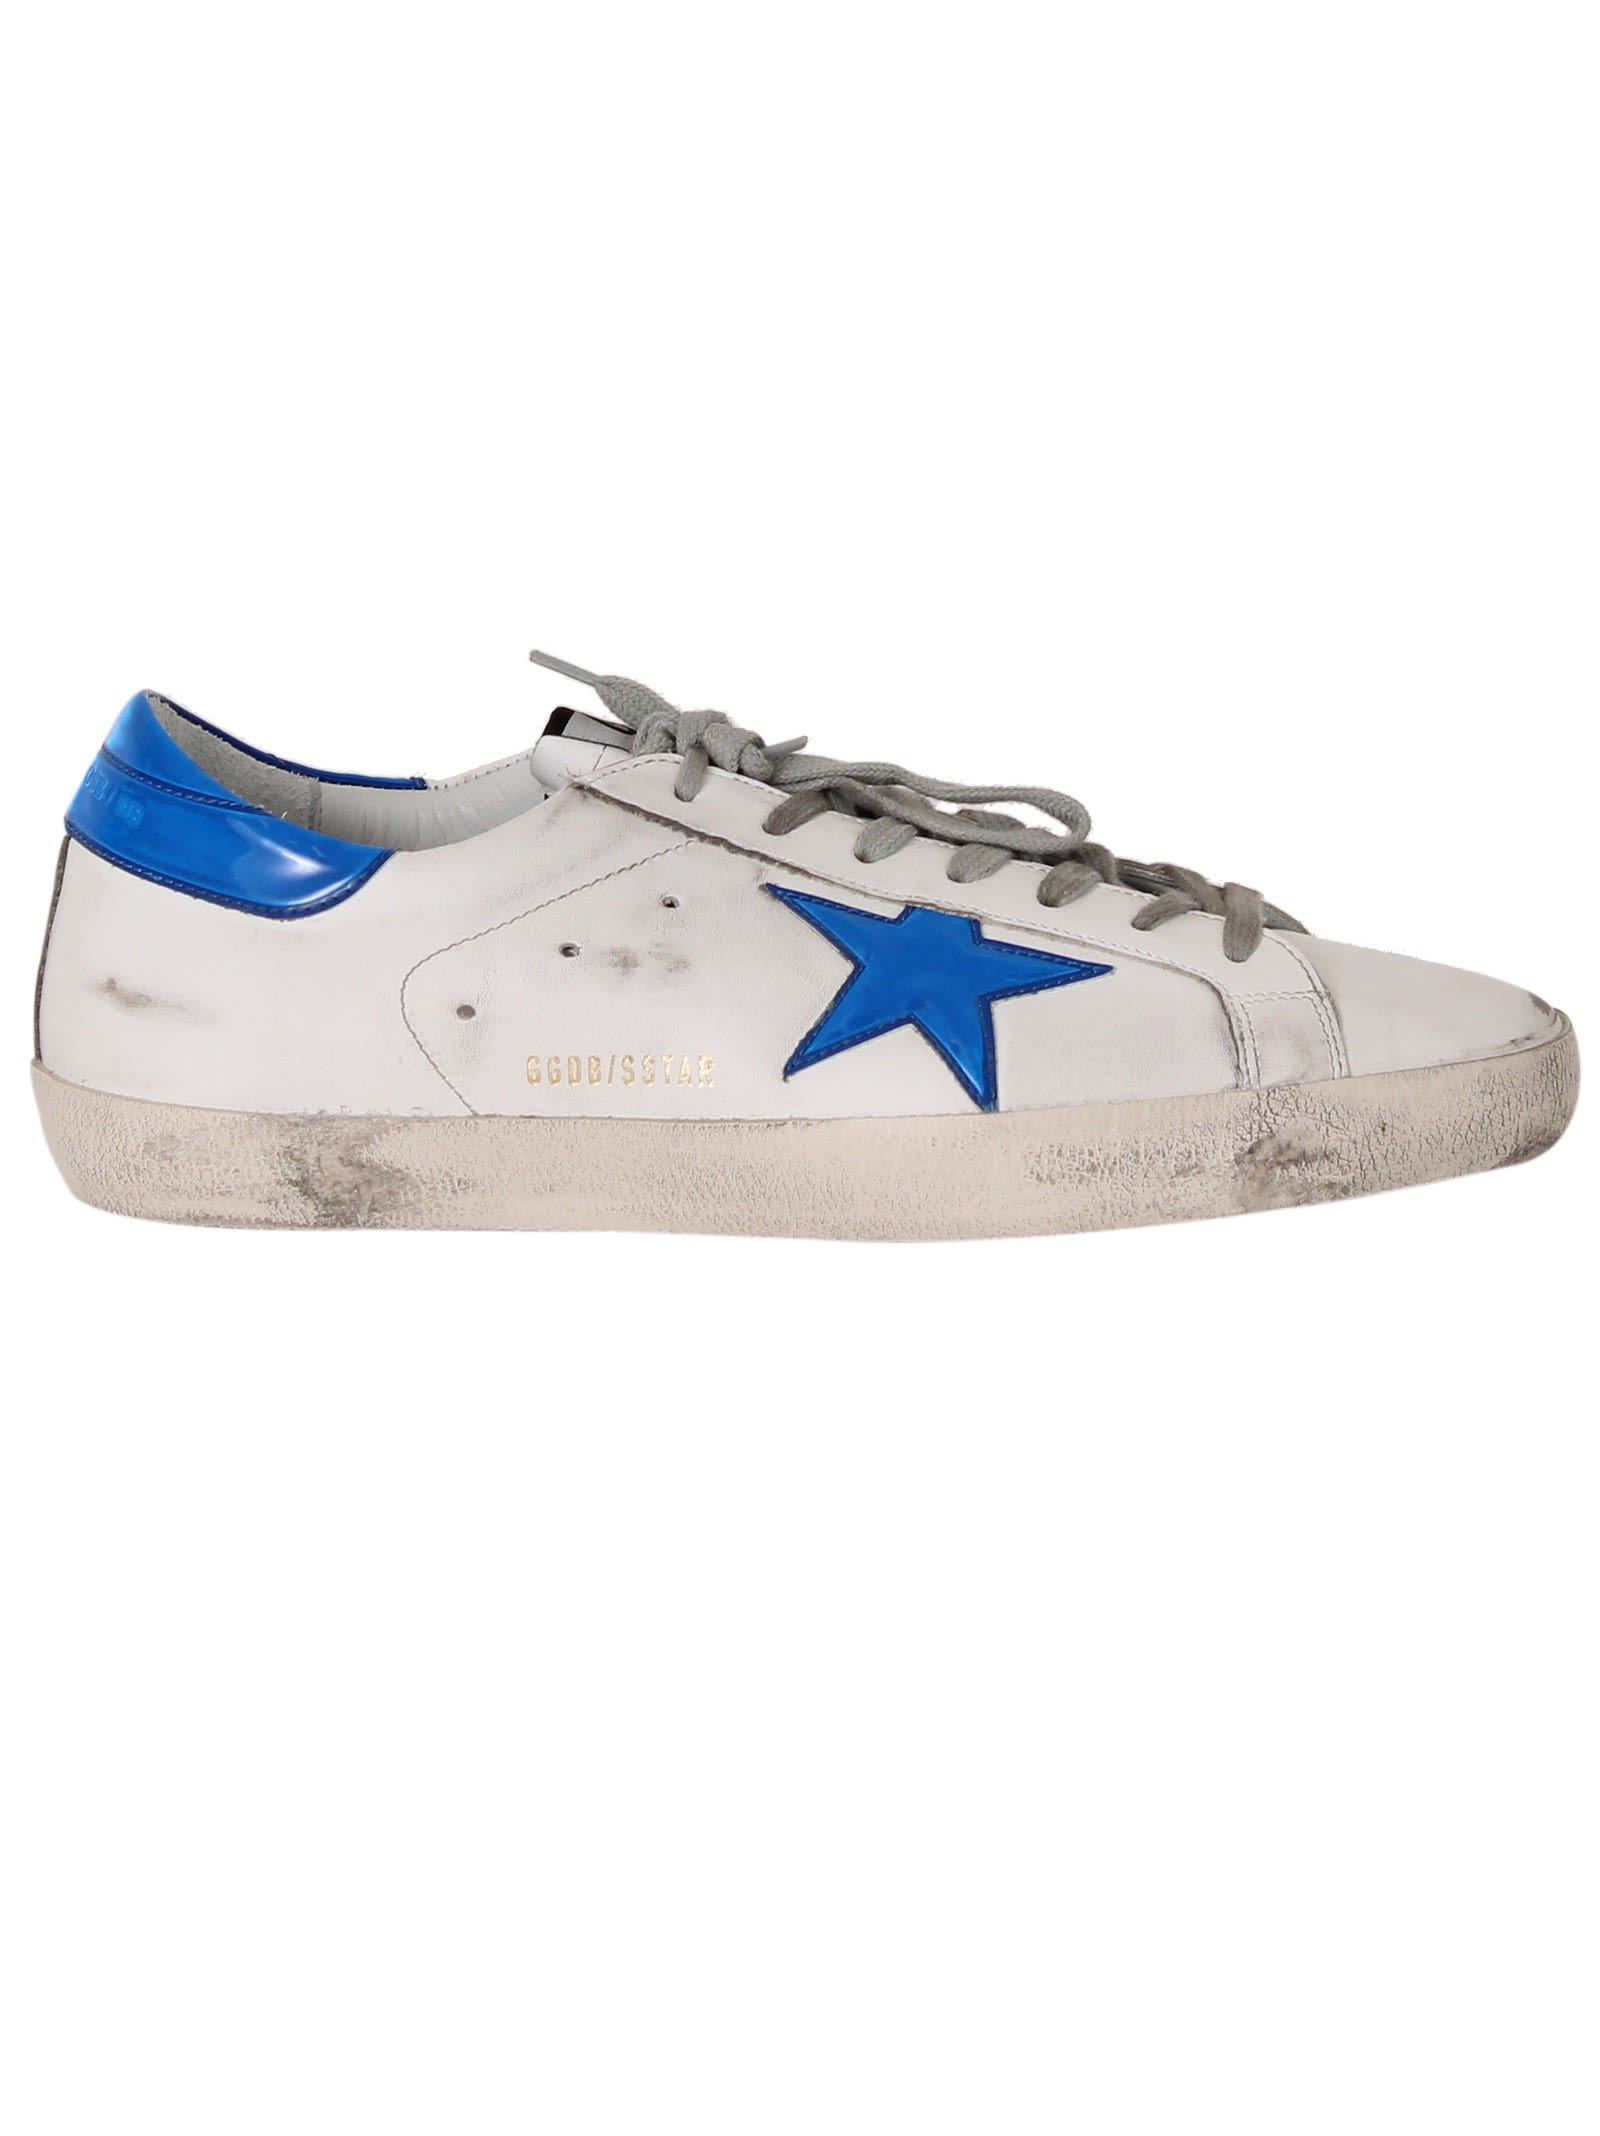 White Bright Blue Superstar Sneakers